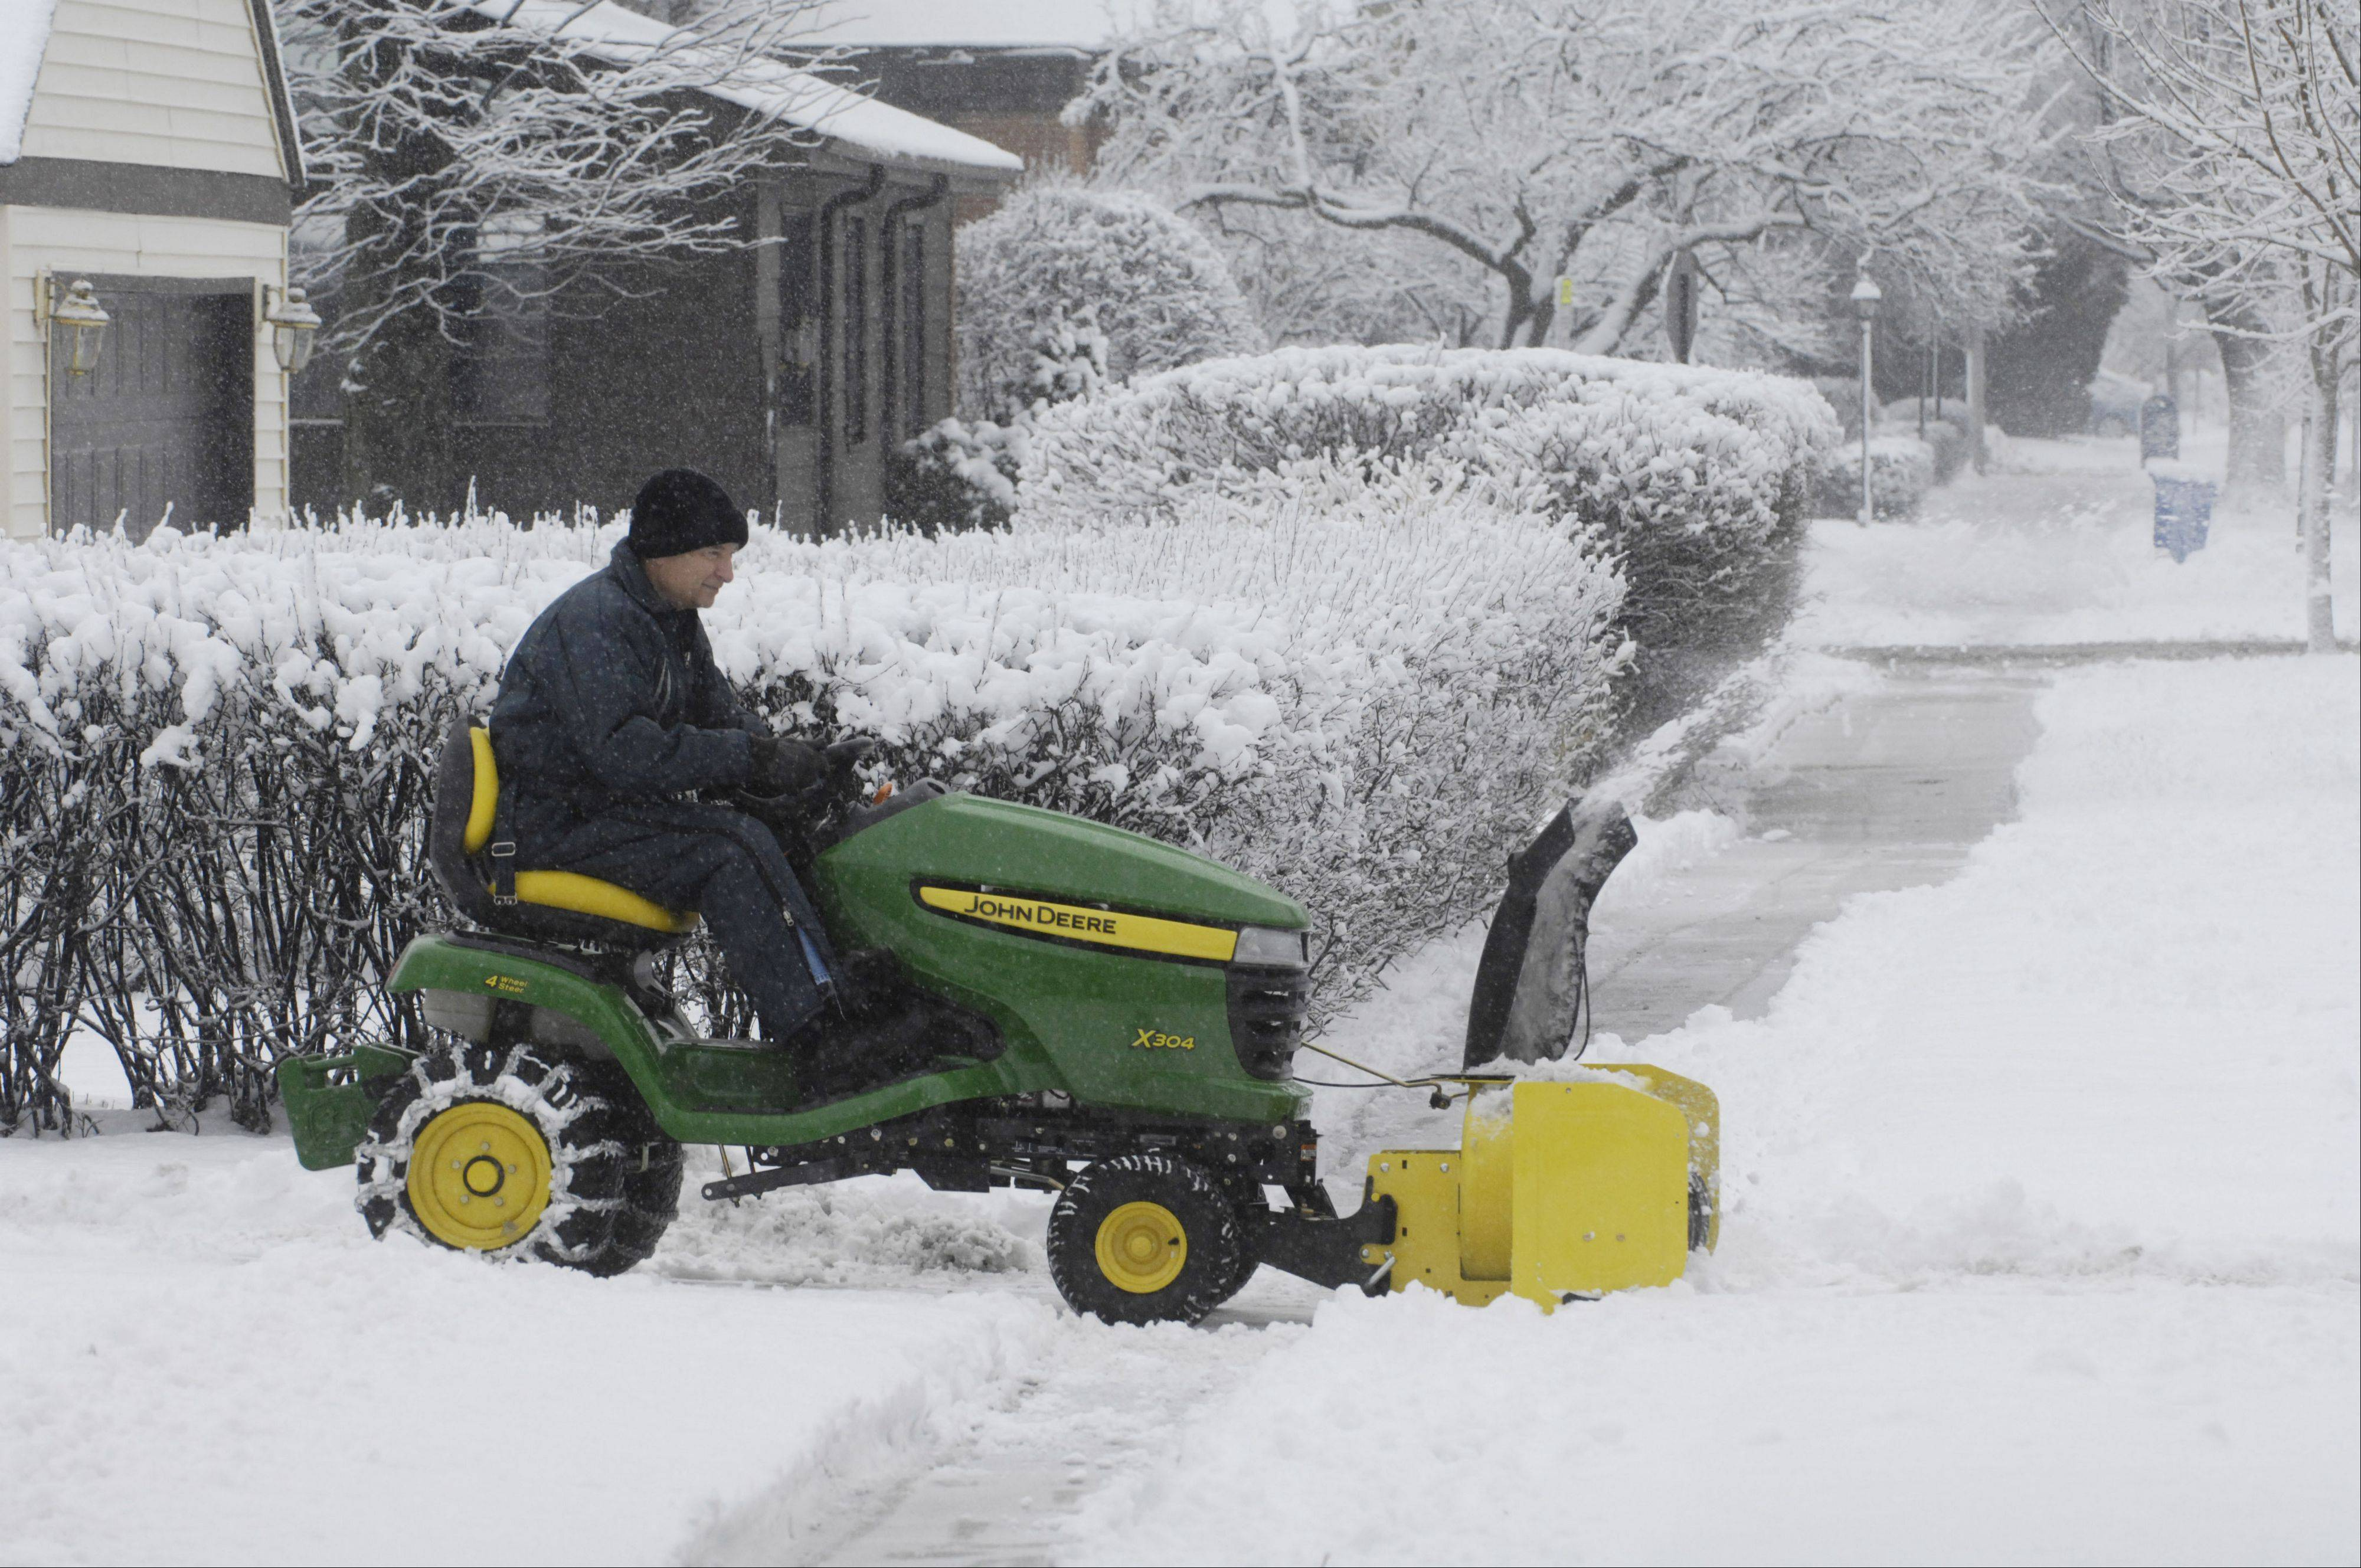 Leo Wajda uses a tractor to plow his driveway in Mount Prospect Friday morning.